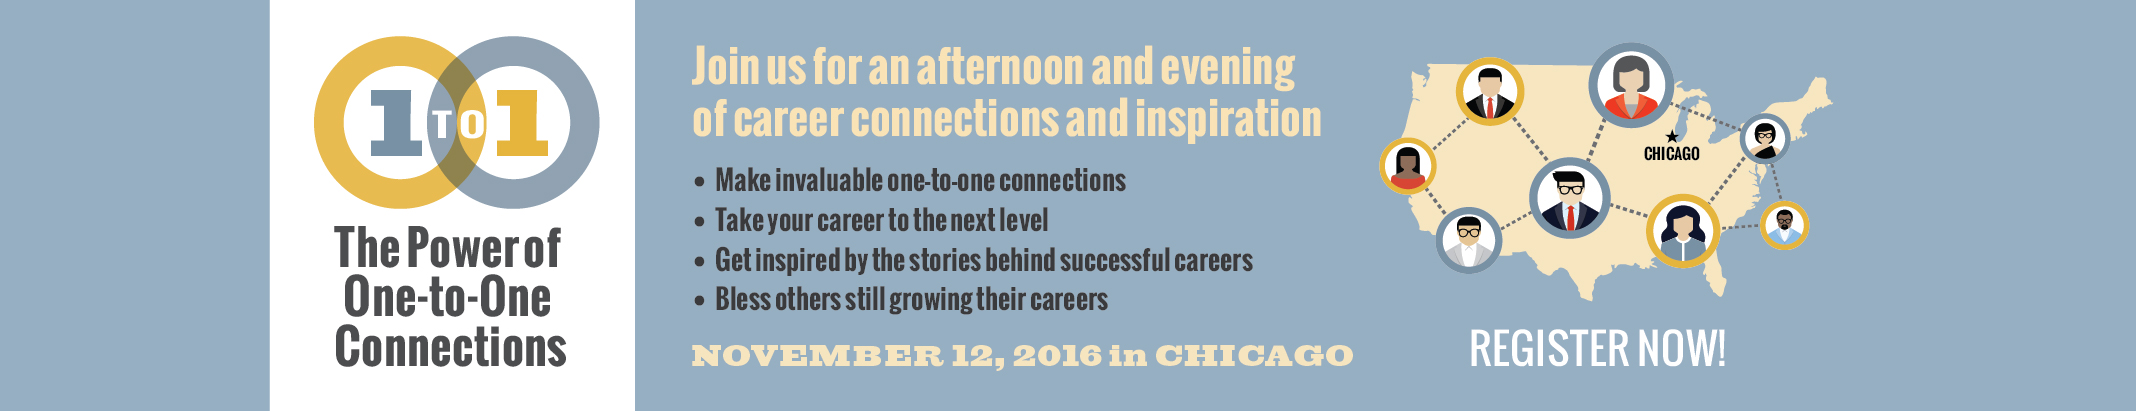 ABF Career Alliance Chicago event 2016